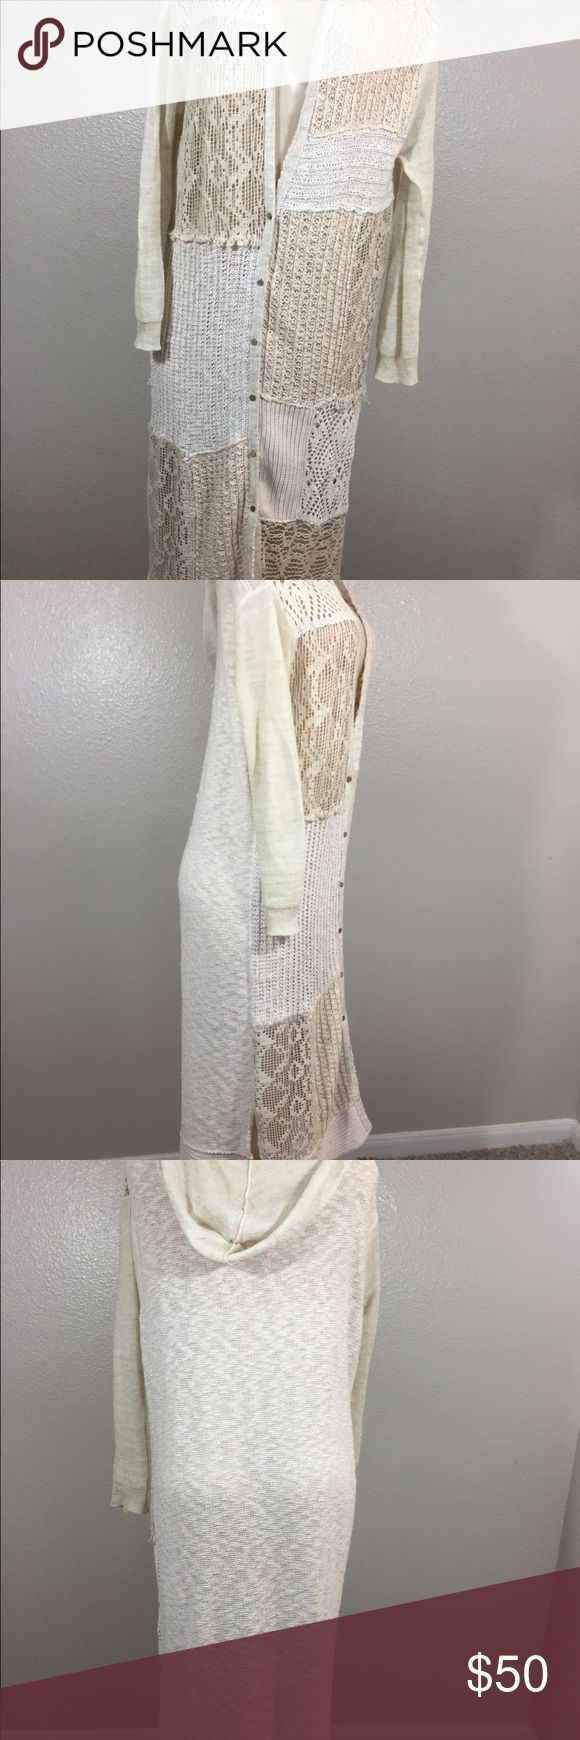 """Free People Women's Hoodie Duster Crochet Hoodie Duster Button Up Good condition no rips no holes no stains (Approximate Measurements Length 43.5 Sleeve 19.5 Waist 20"""" Free People Jackets & Coats"""